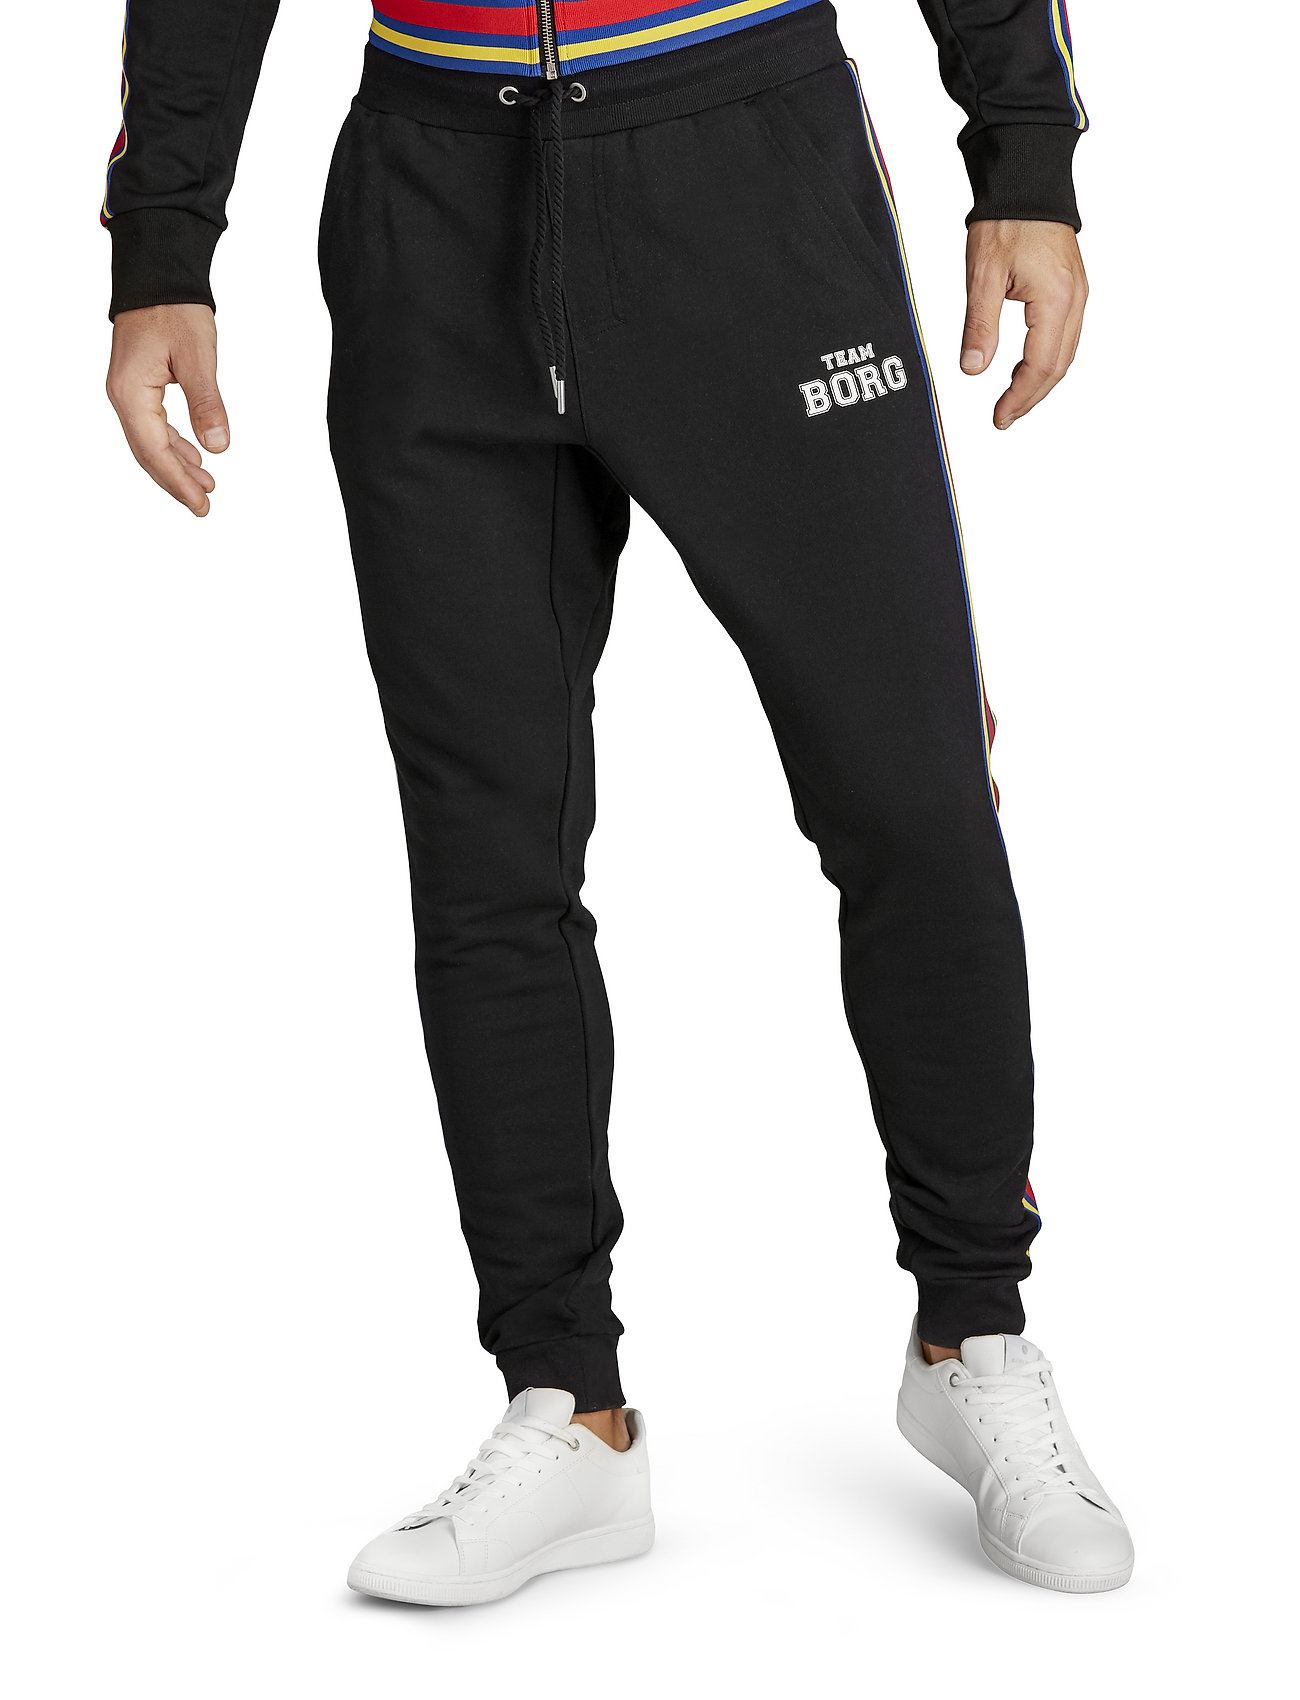 Björn Borg - TEAM BORG TRACK PANTS - sweatpants - black beauty